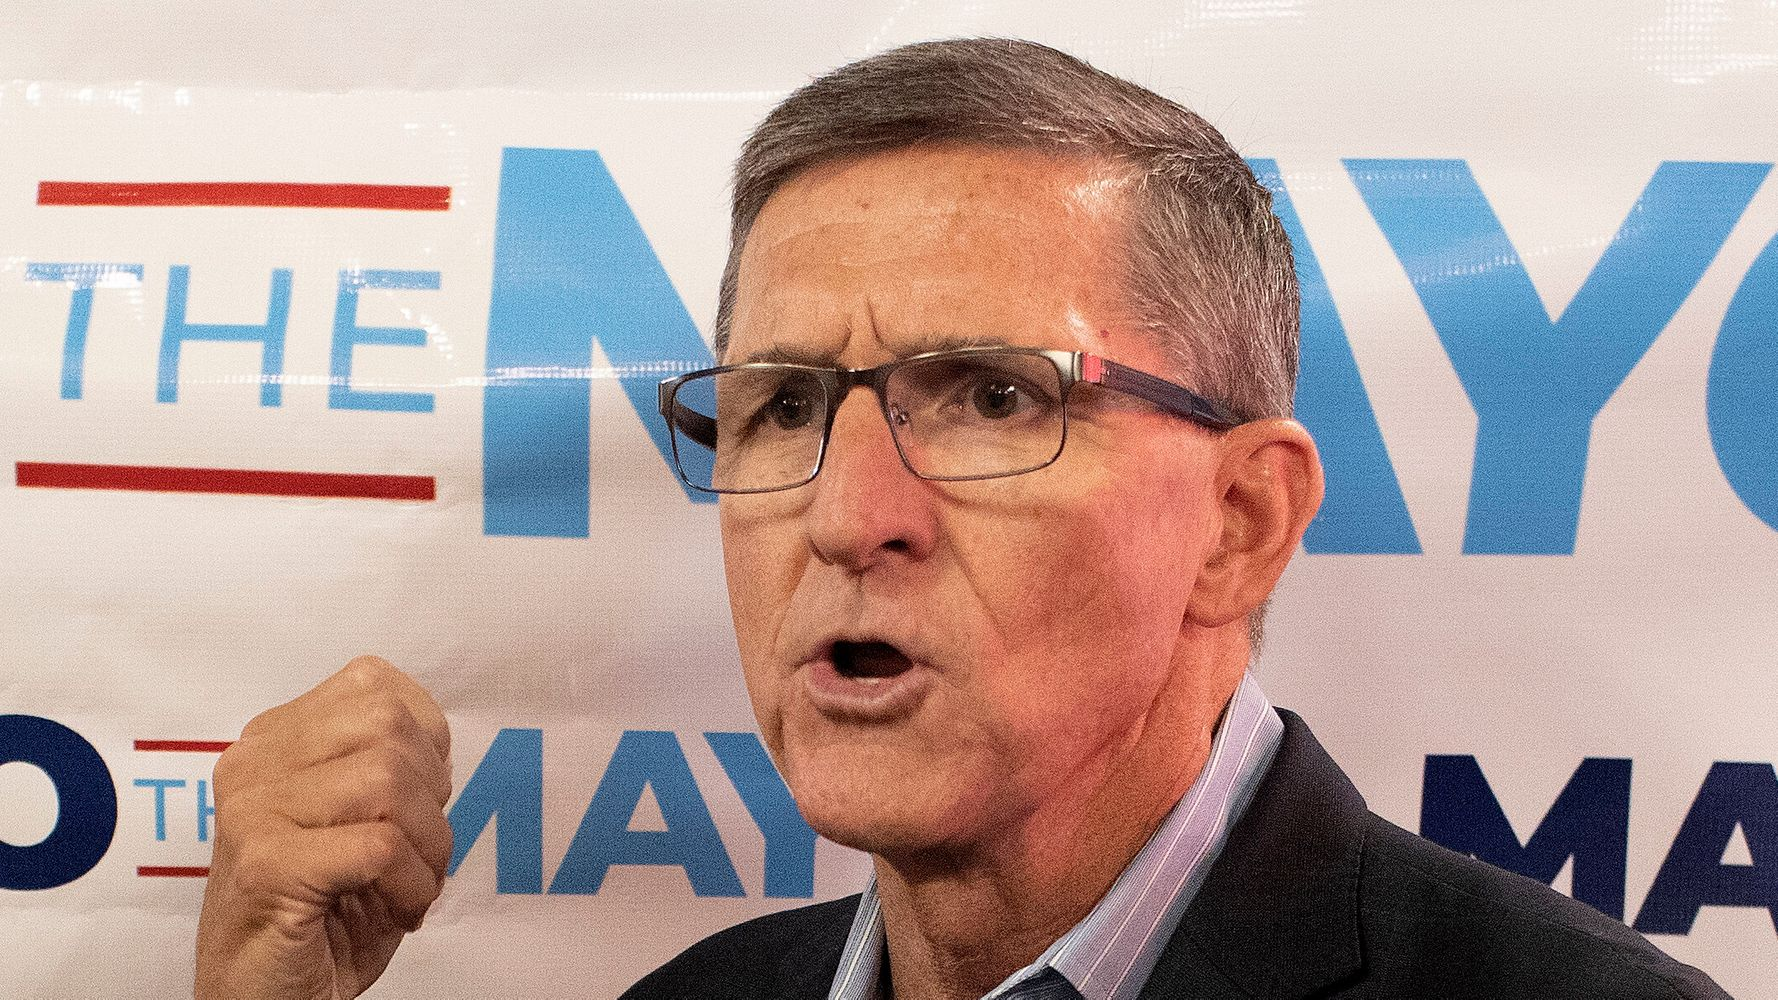 Michael Flynn Boasts Maybe He'll 'Find Somebody In Washington' With His New AR-15